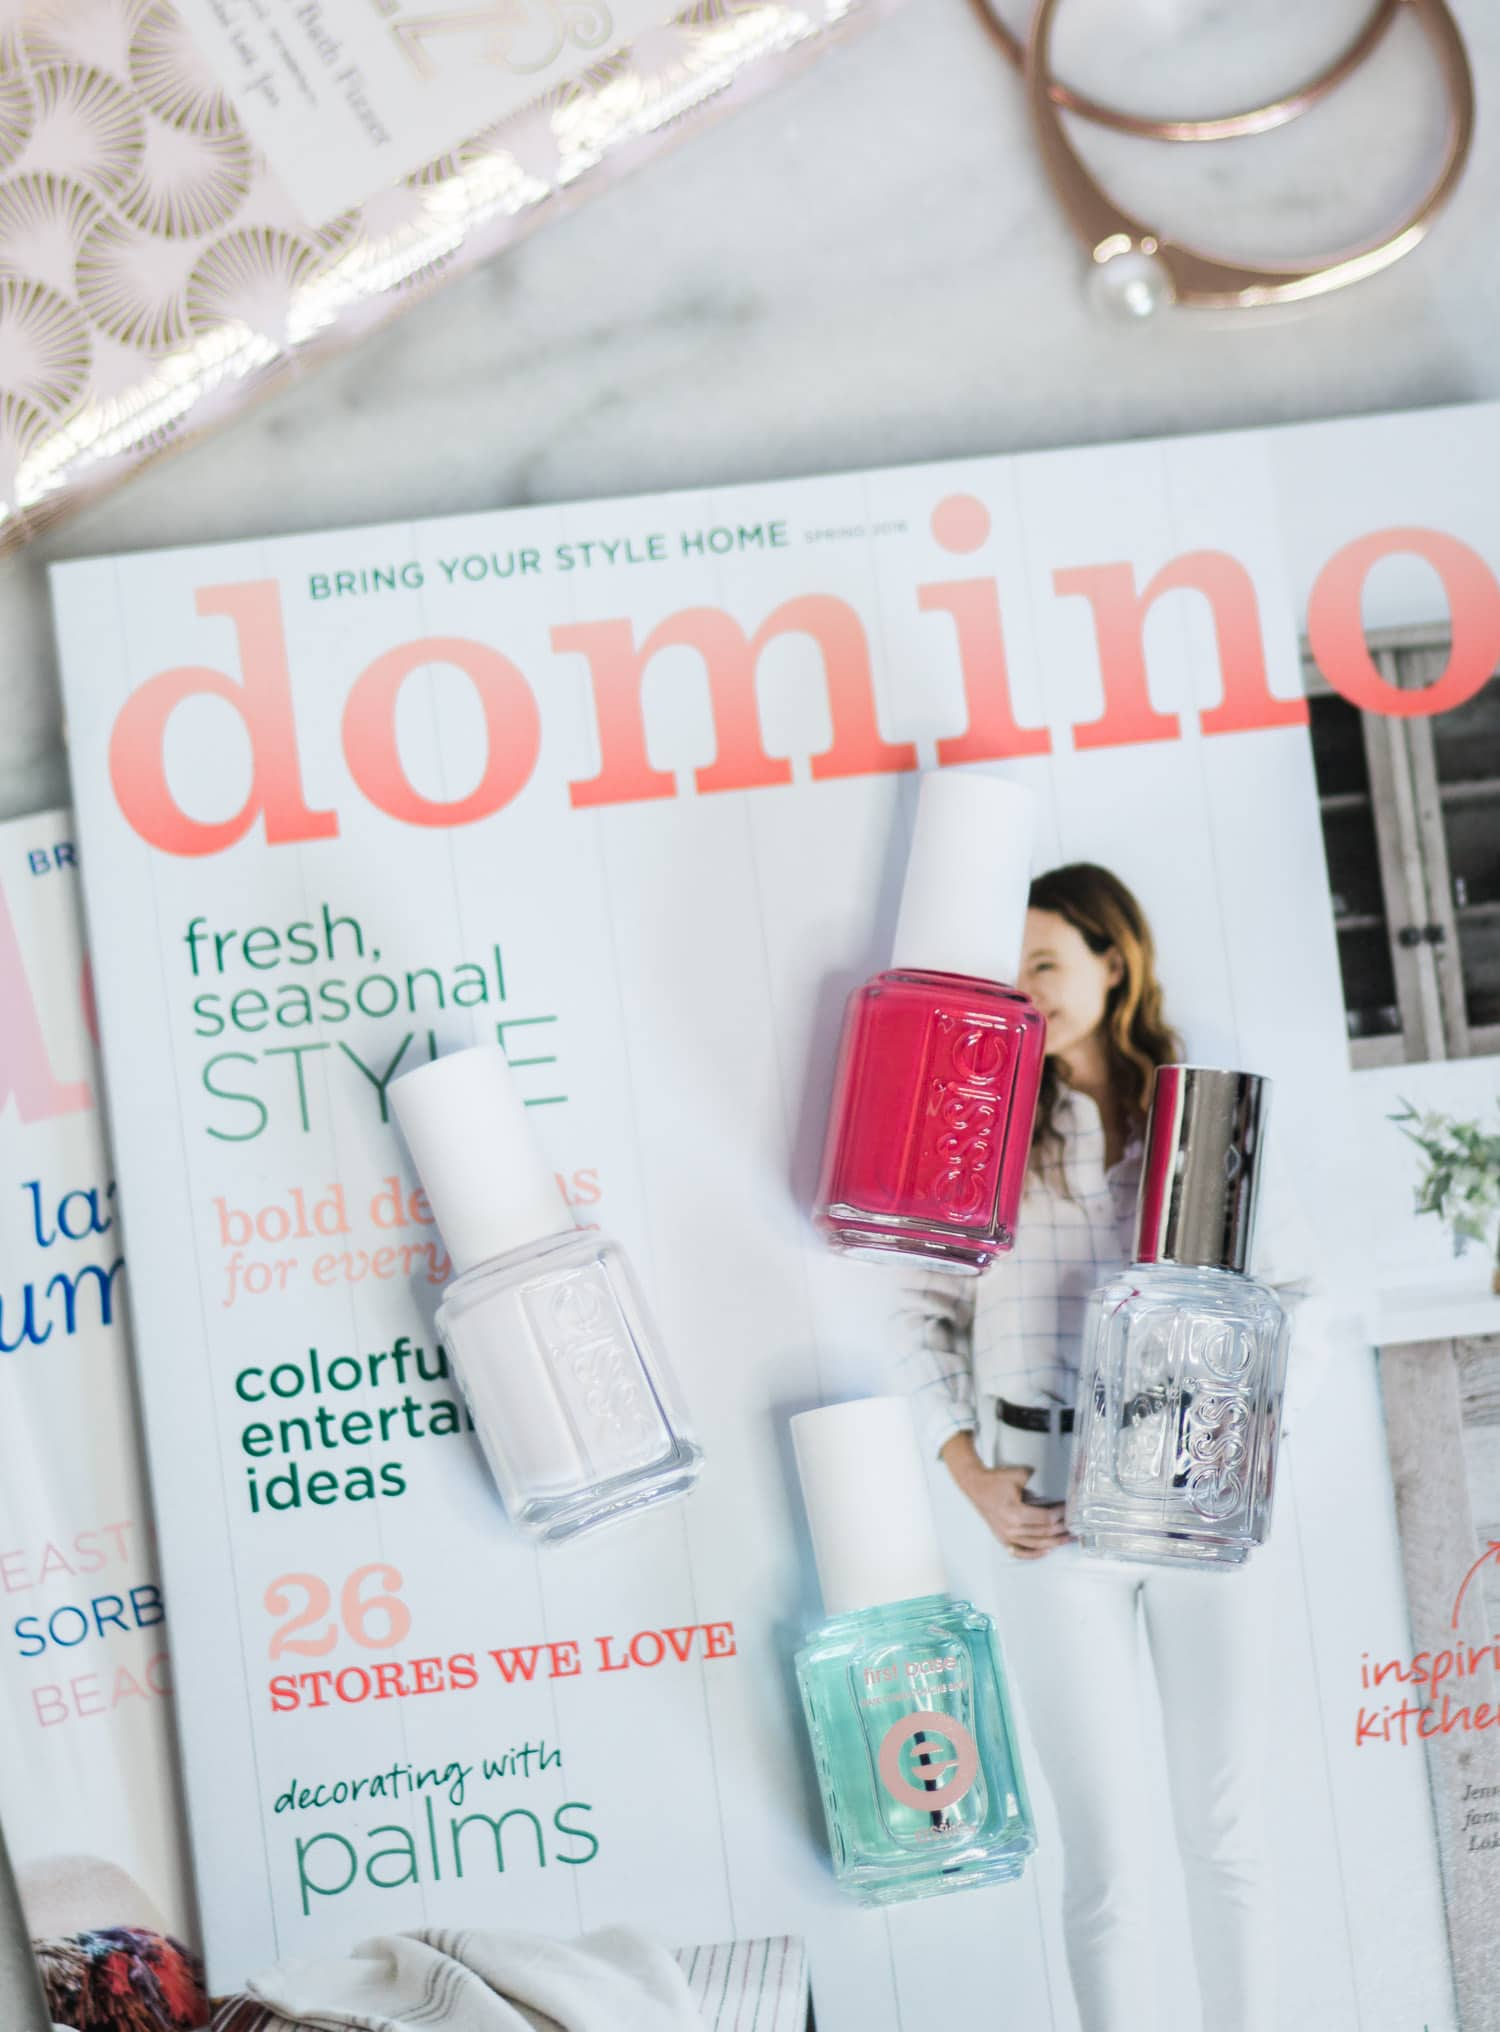 The best nail polishes for summer - Essie Coconut Cove, Berried Treasures, First Base Primer, and Gel Setter Top Coat | Summer beauty favorites by beauty blogger Ashley Brooke Nicholas